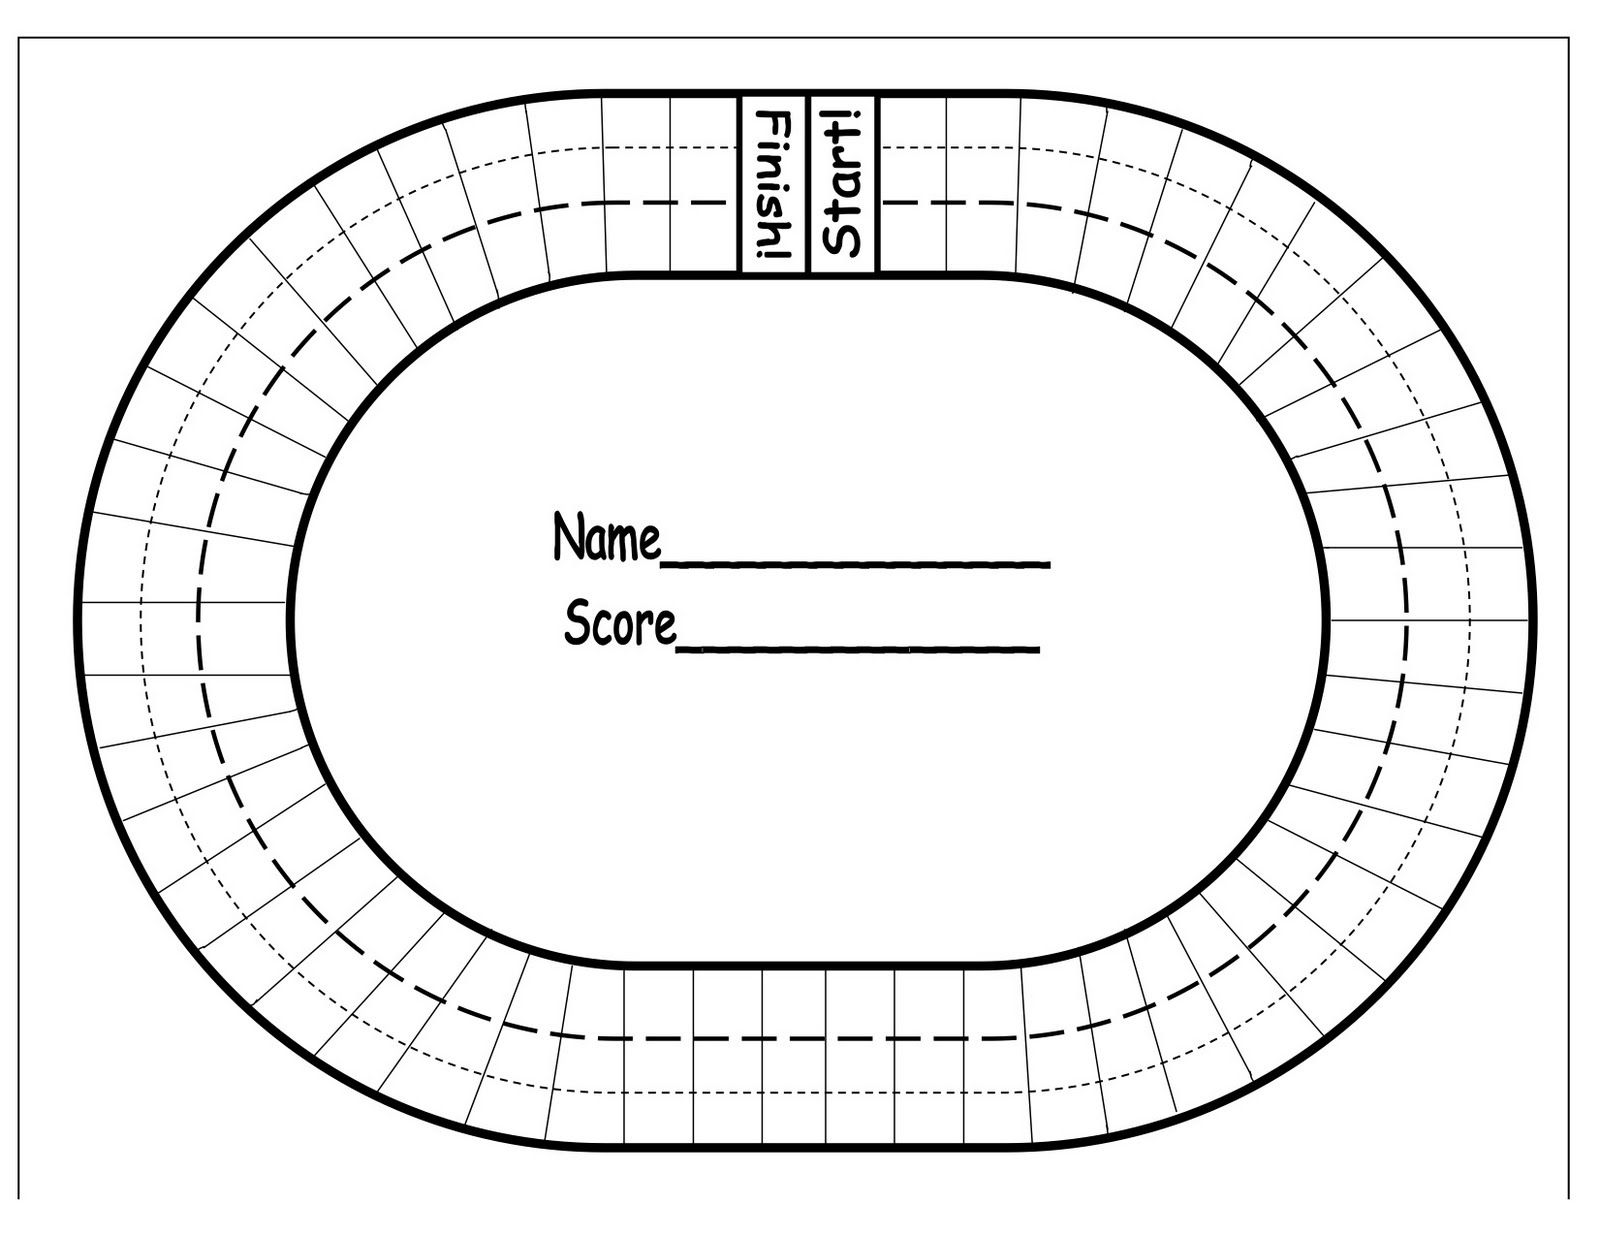 Cherry Creek 8rd Grade: Math Facts  Coloring pages, Math facts, Math